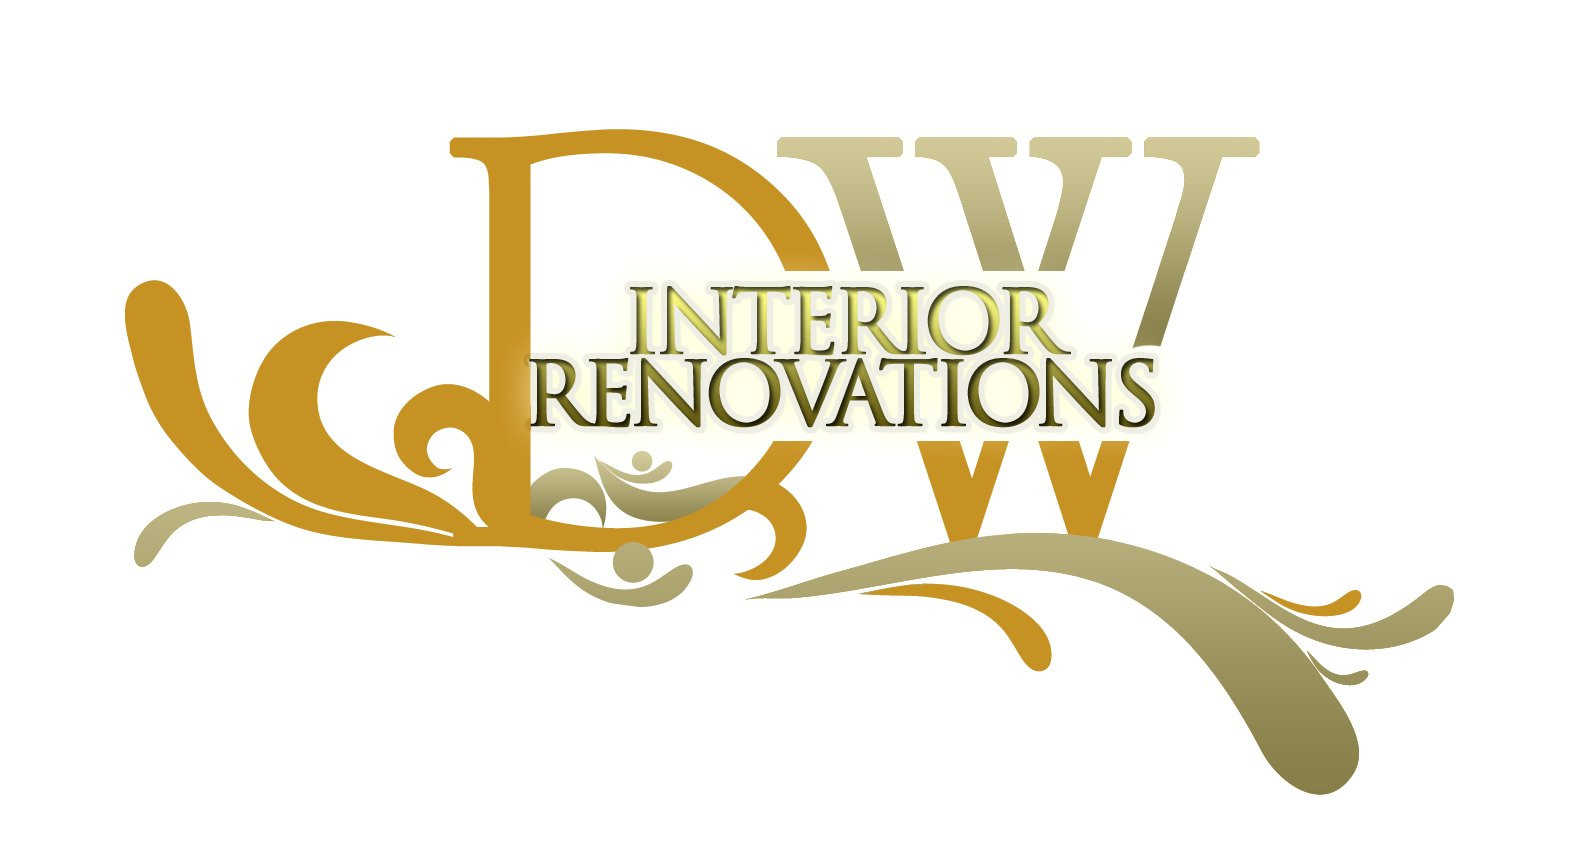 DW Interior Renovations